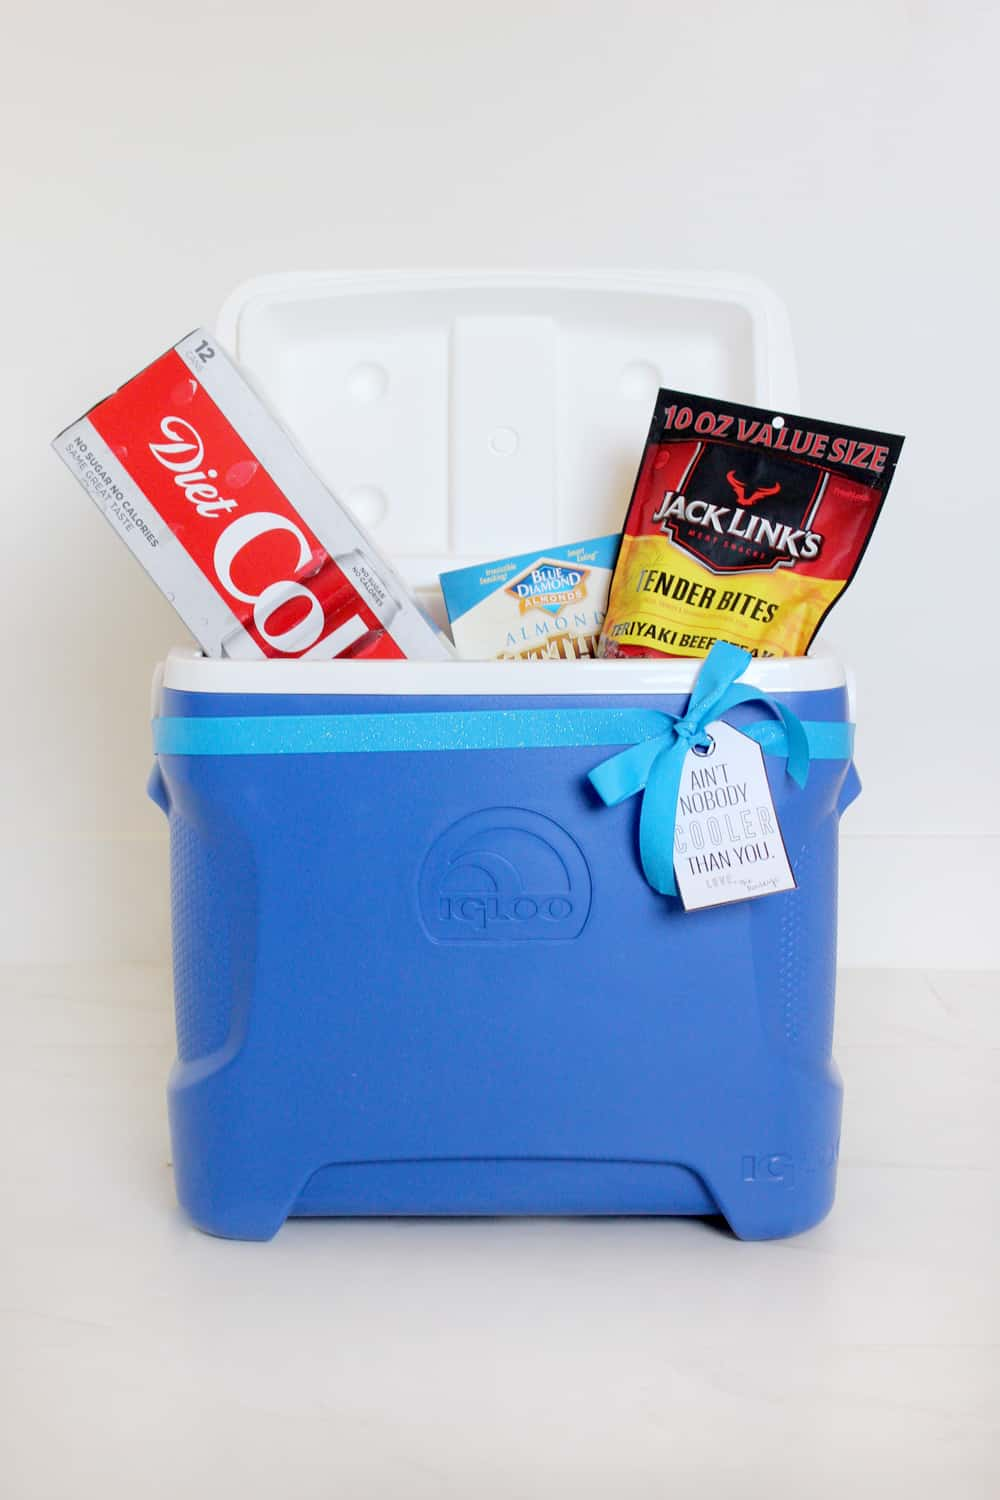 I love this cooler gift idea with the printable tag! So simple, but useful and fun!